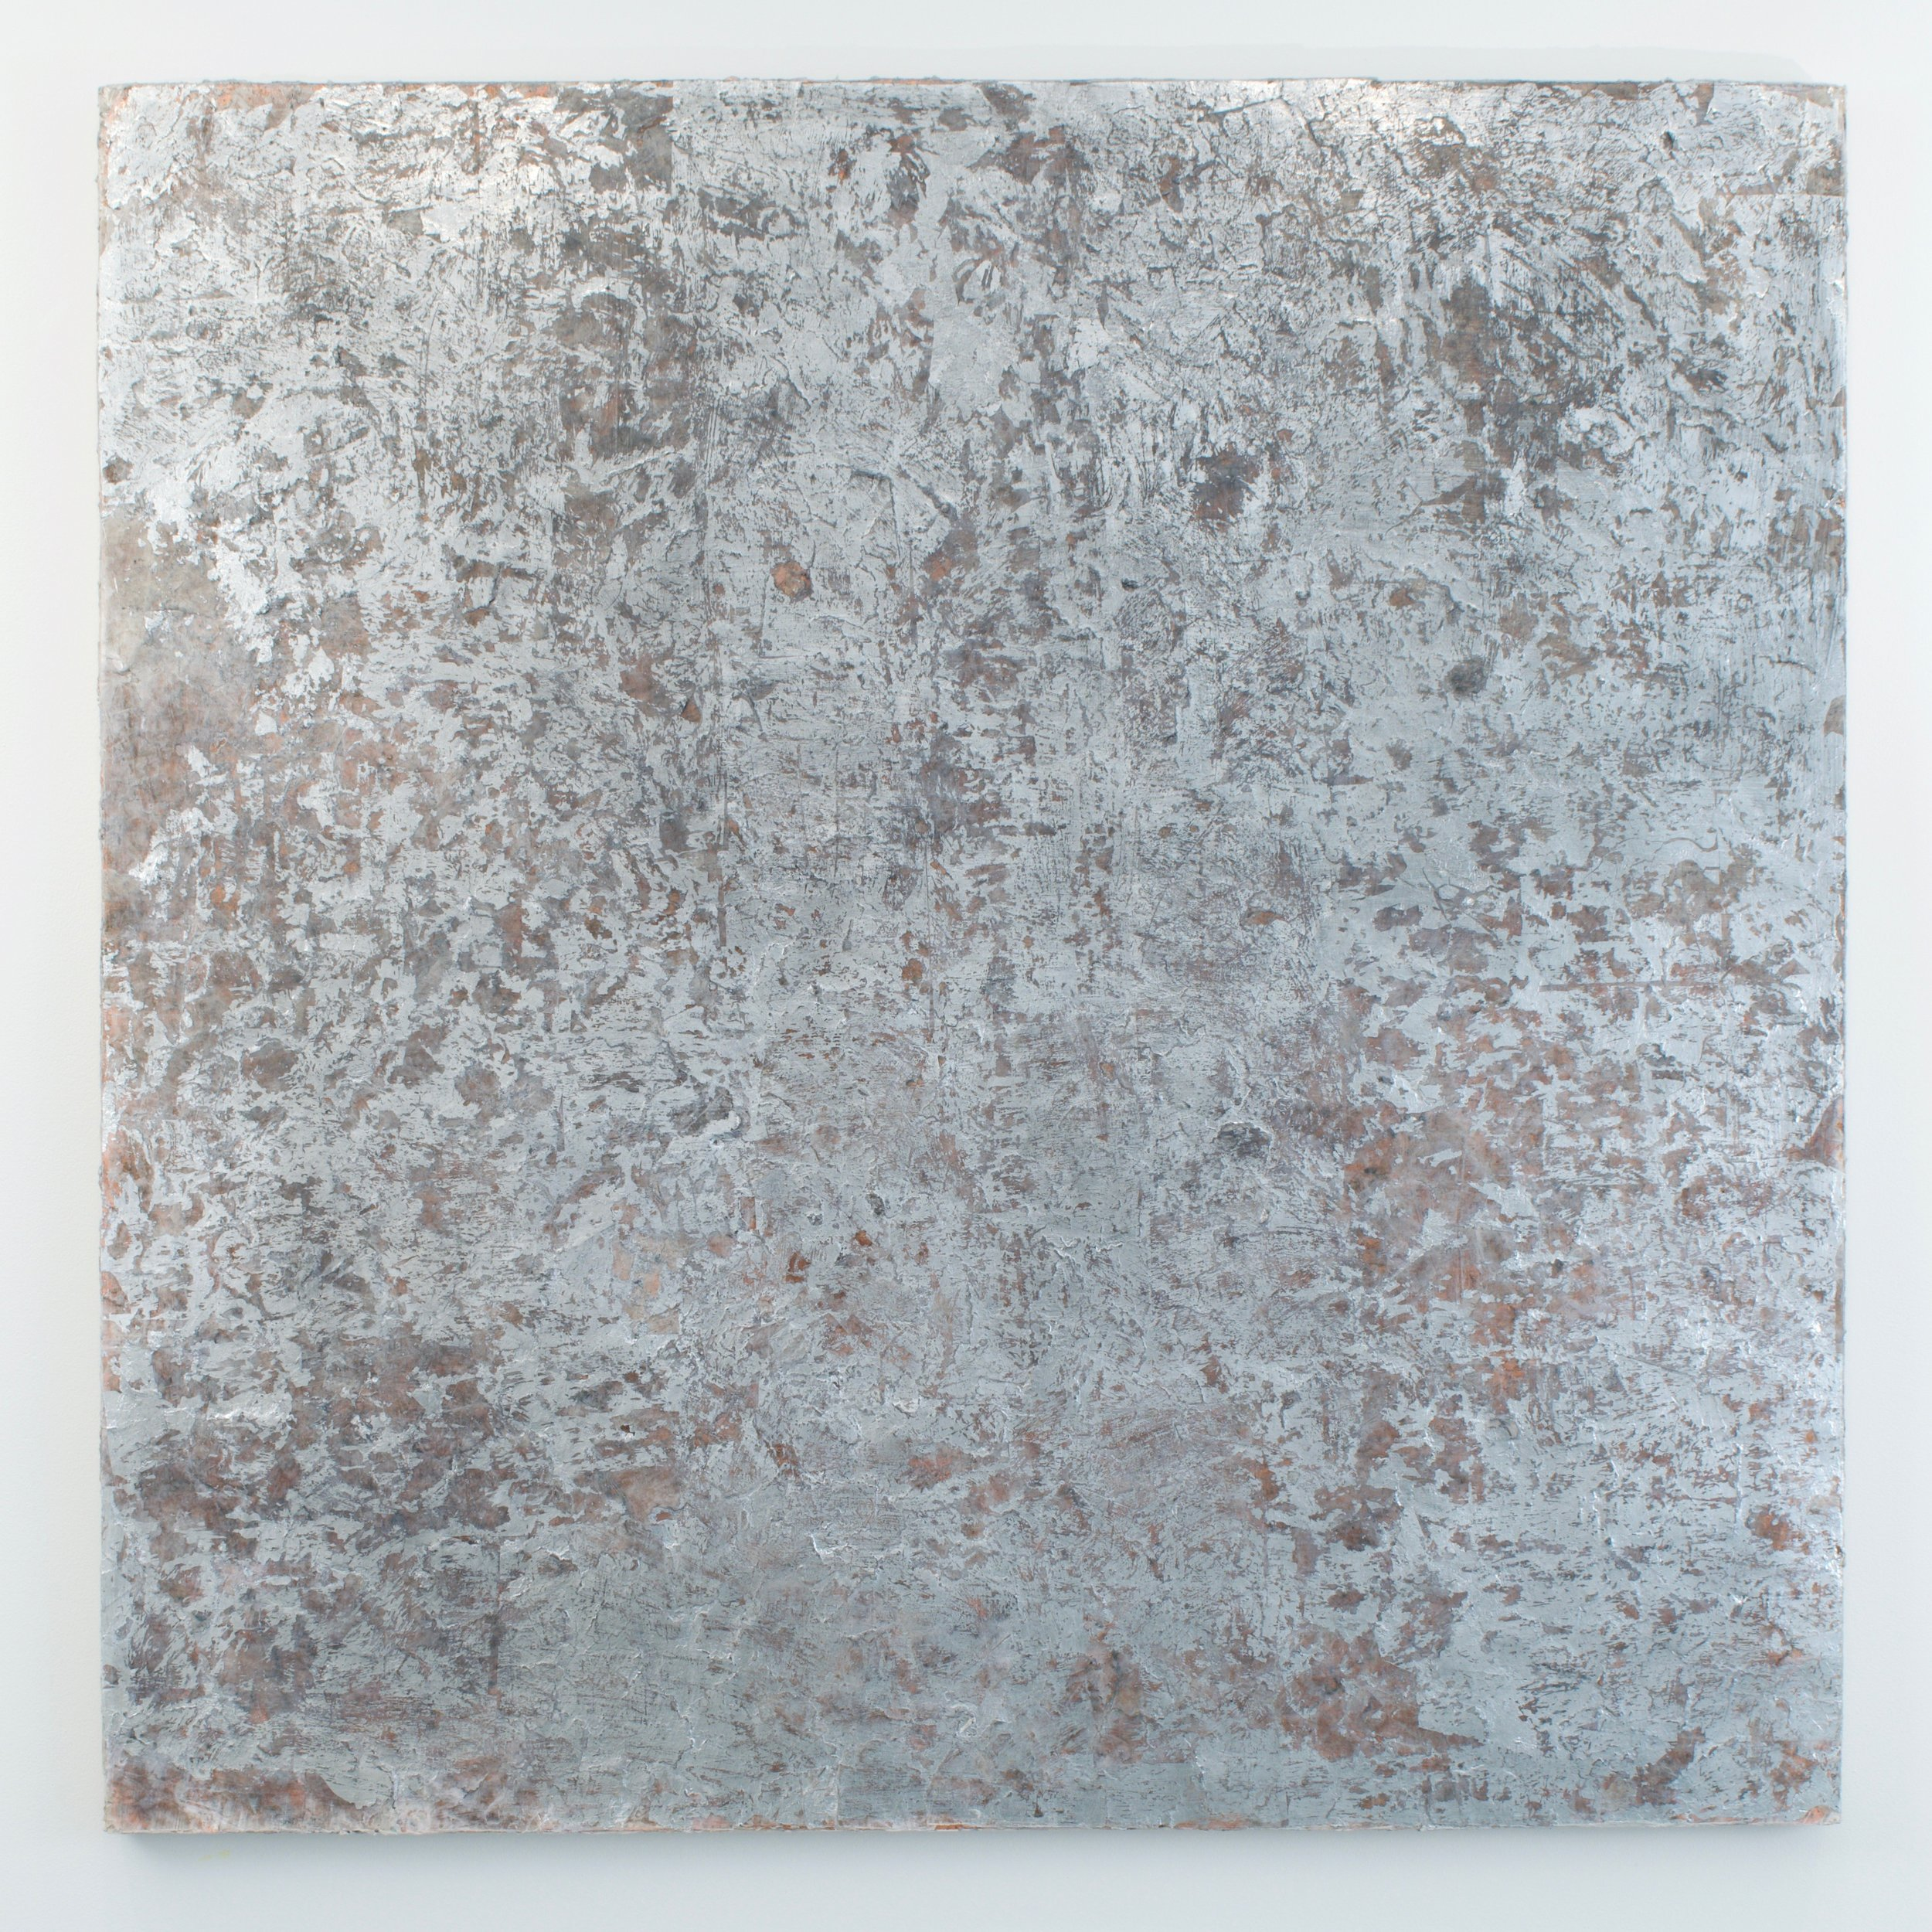 Erosion, 2018. Mica, cooper and silver leaf, sequins, and graphite on canvas. 48x48 in.